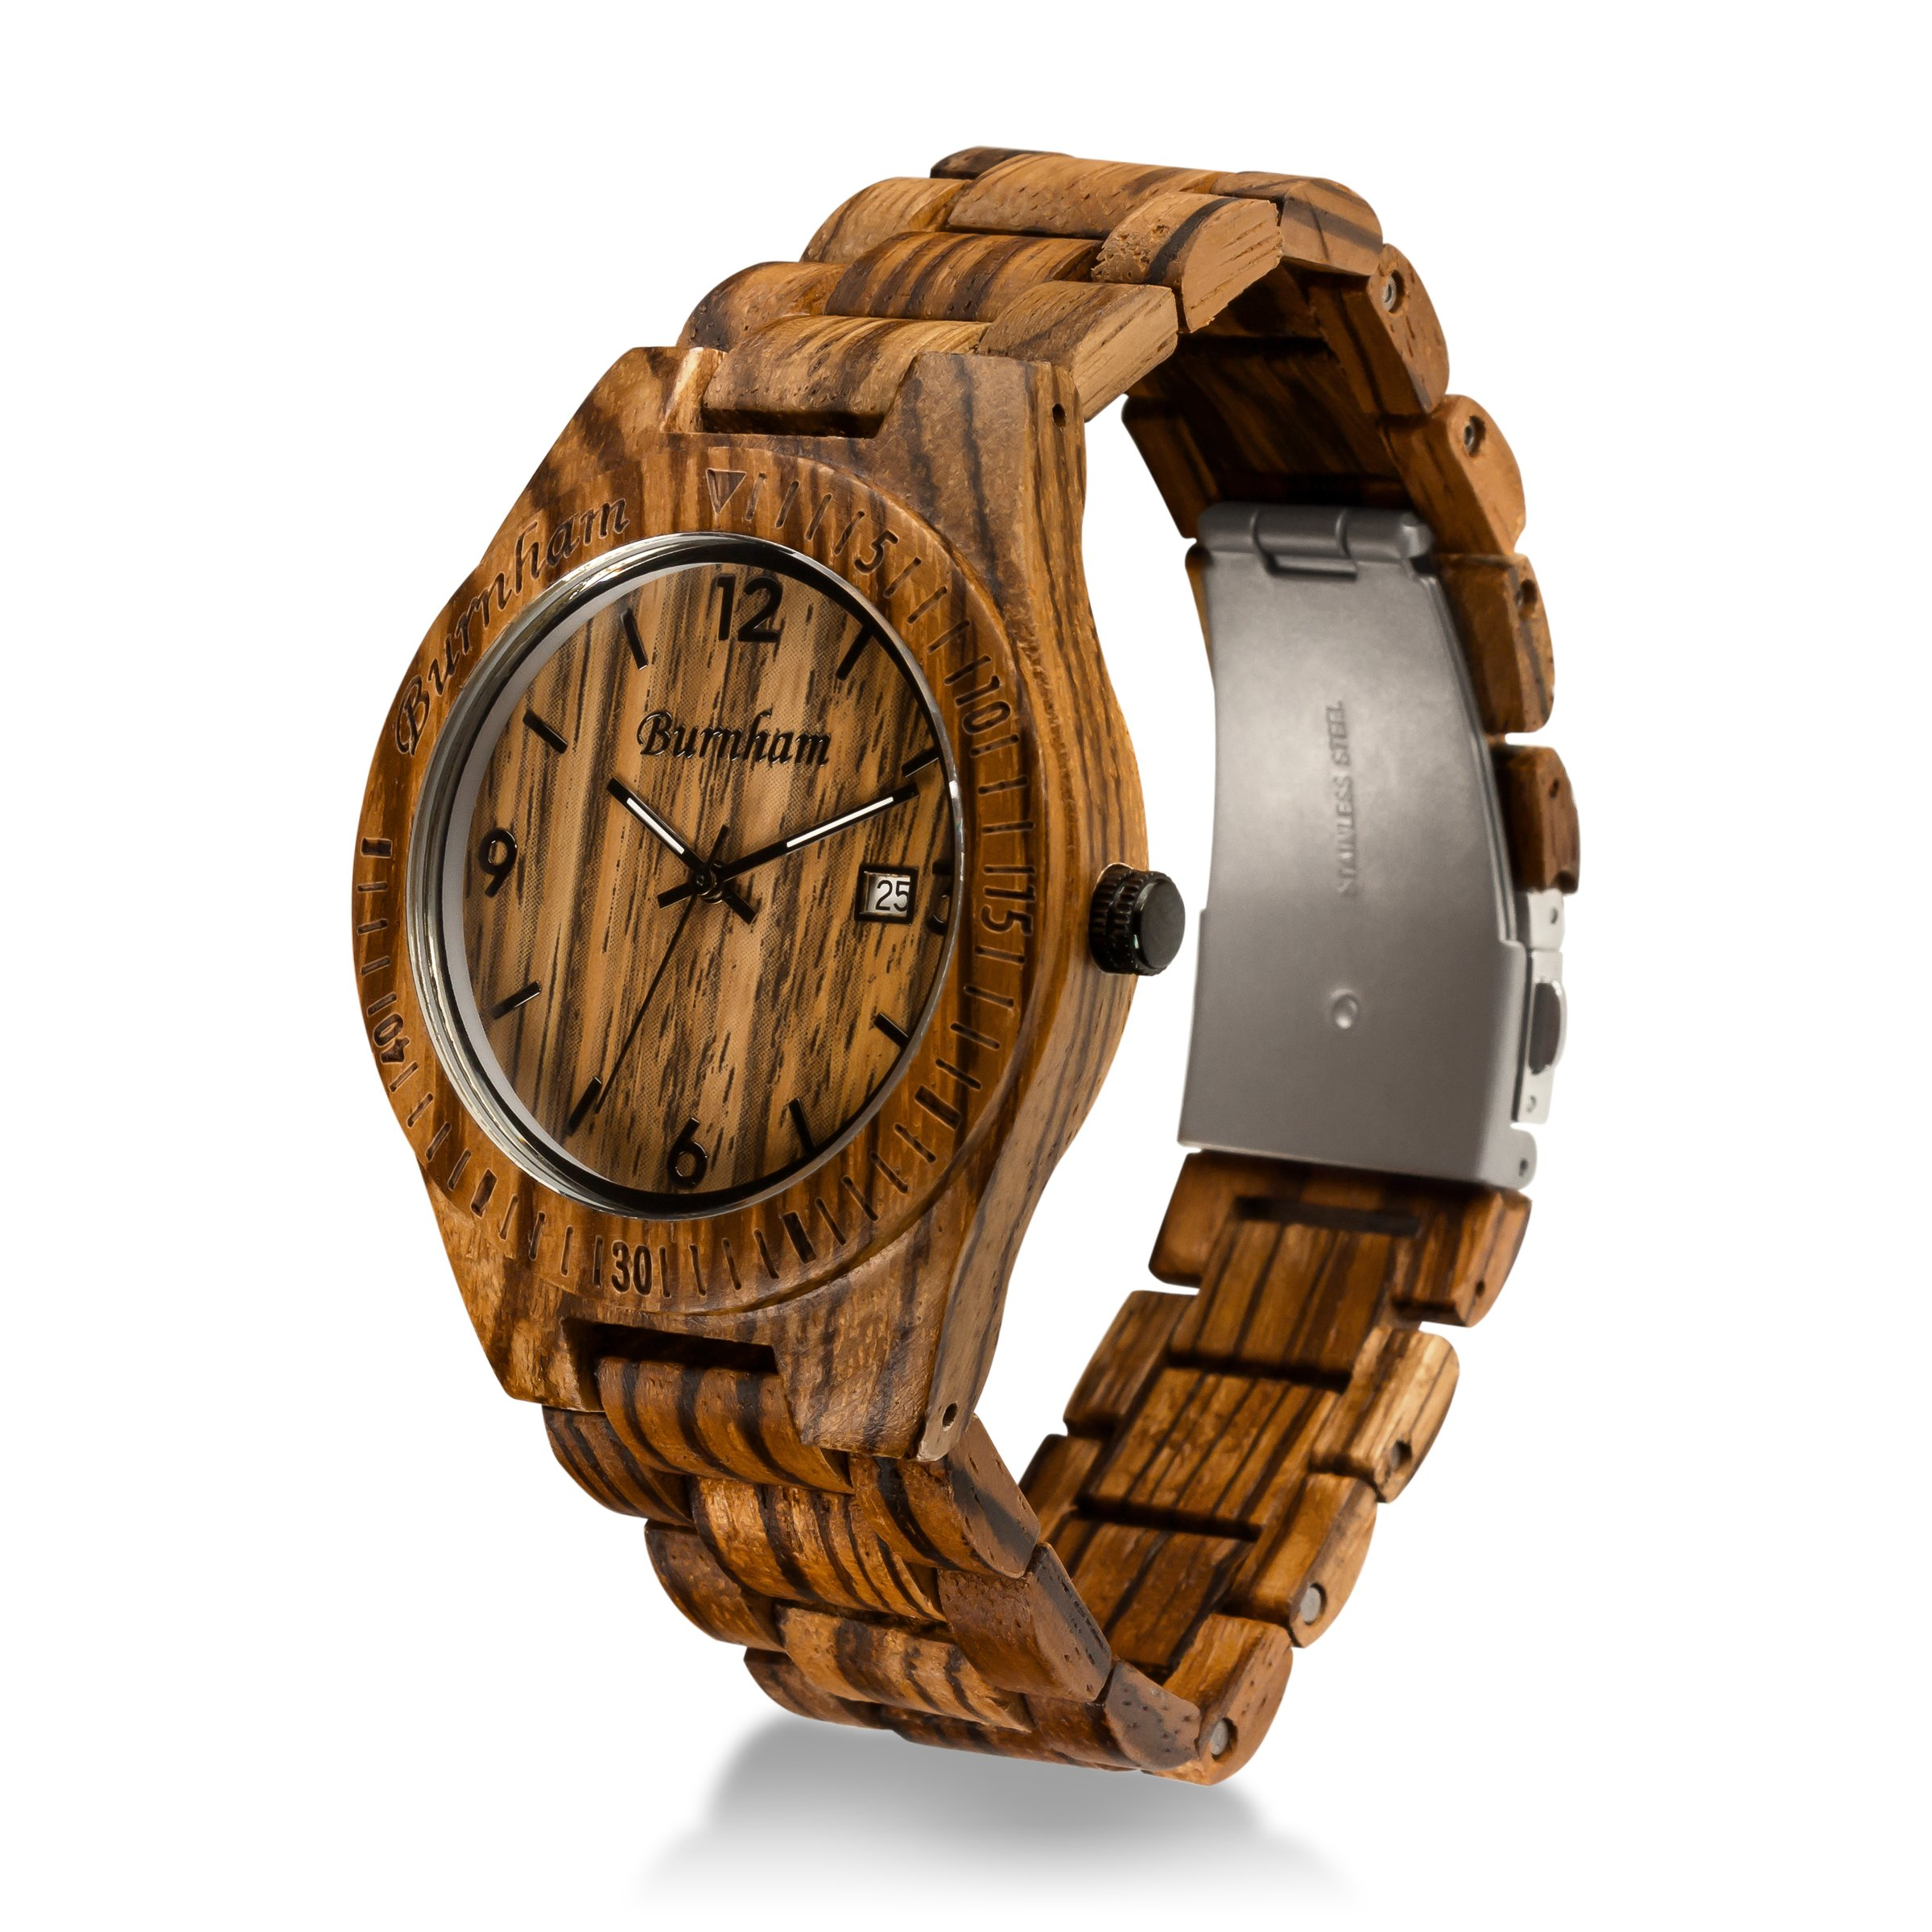 Burnham Wooden Watch - ARG001 Stylish Mens Wood Watches [Solid Natural Wood Grain] Upgraded Swiss Quartz Movement and Date [Easy set and adjust wood watch strap] Fine Crystal Face And Stainless Clasp